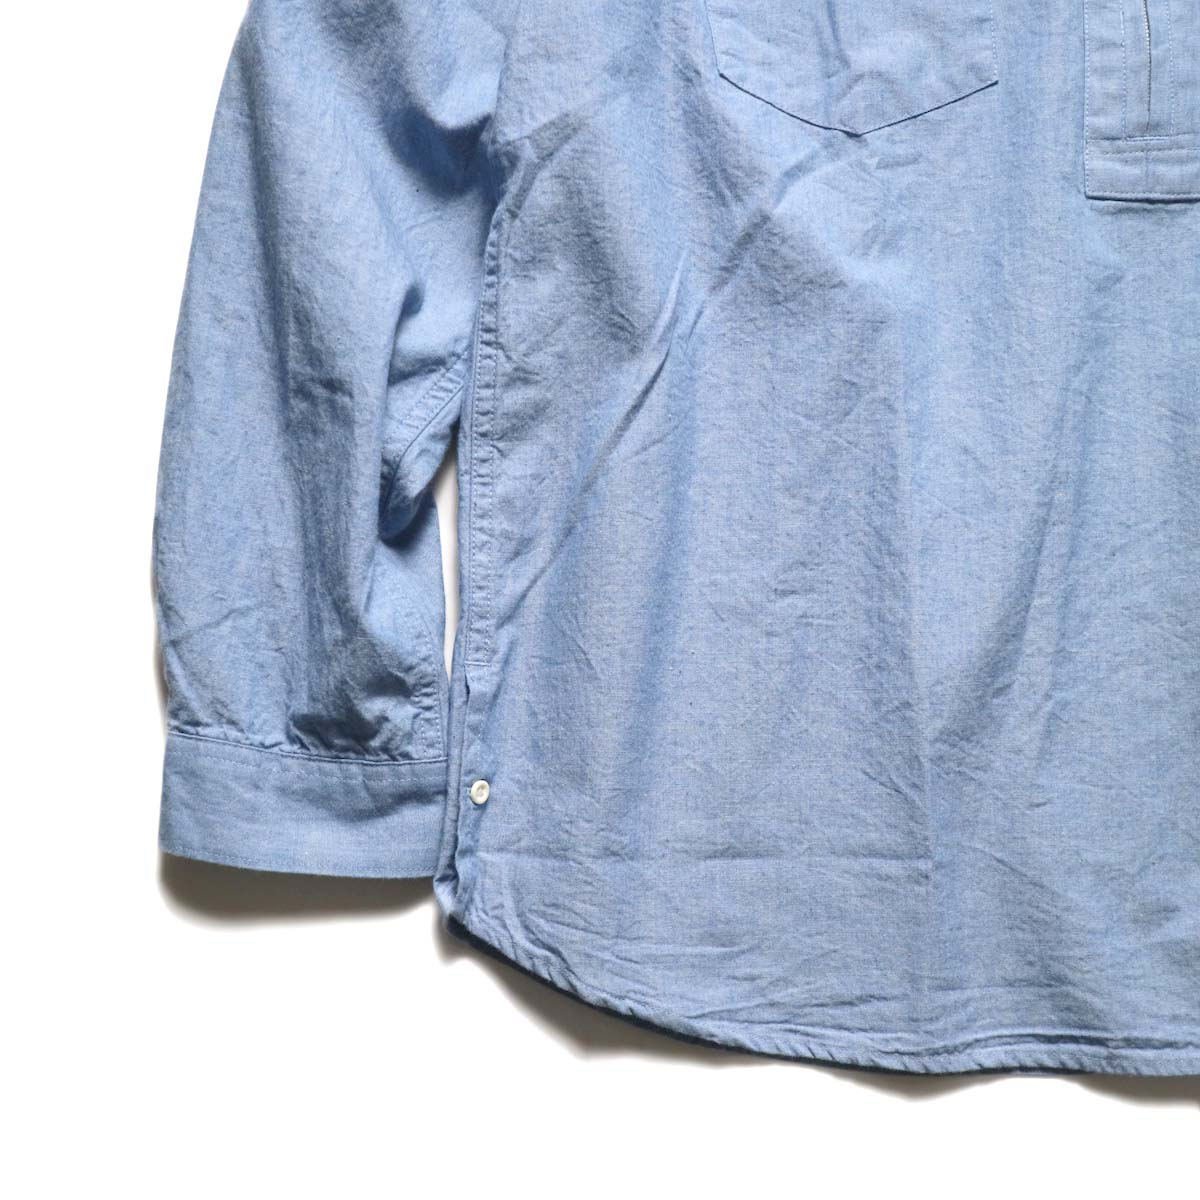 nonnative / RANCHER PULLOVER SHIRT RELAXED FIT COTTON 5oz CHAMBRAY (Sax)袖、裾